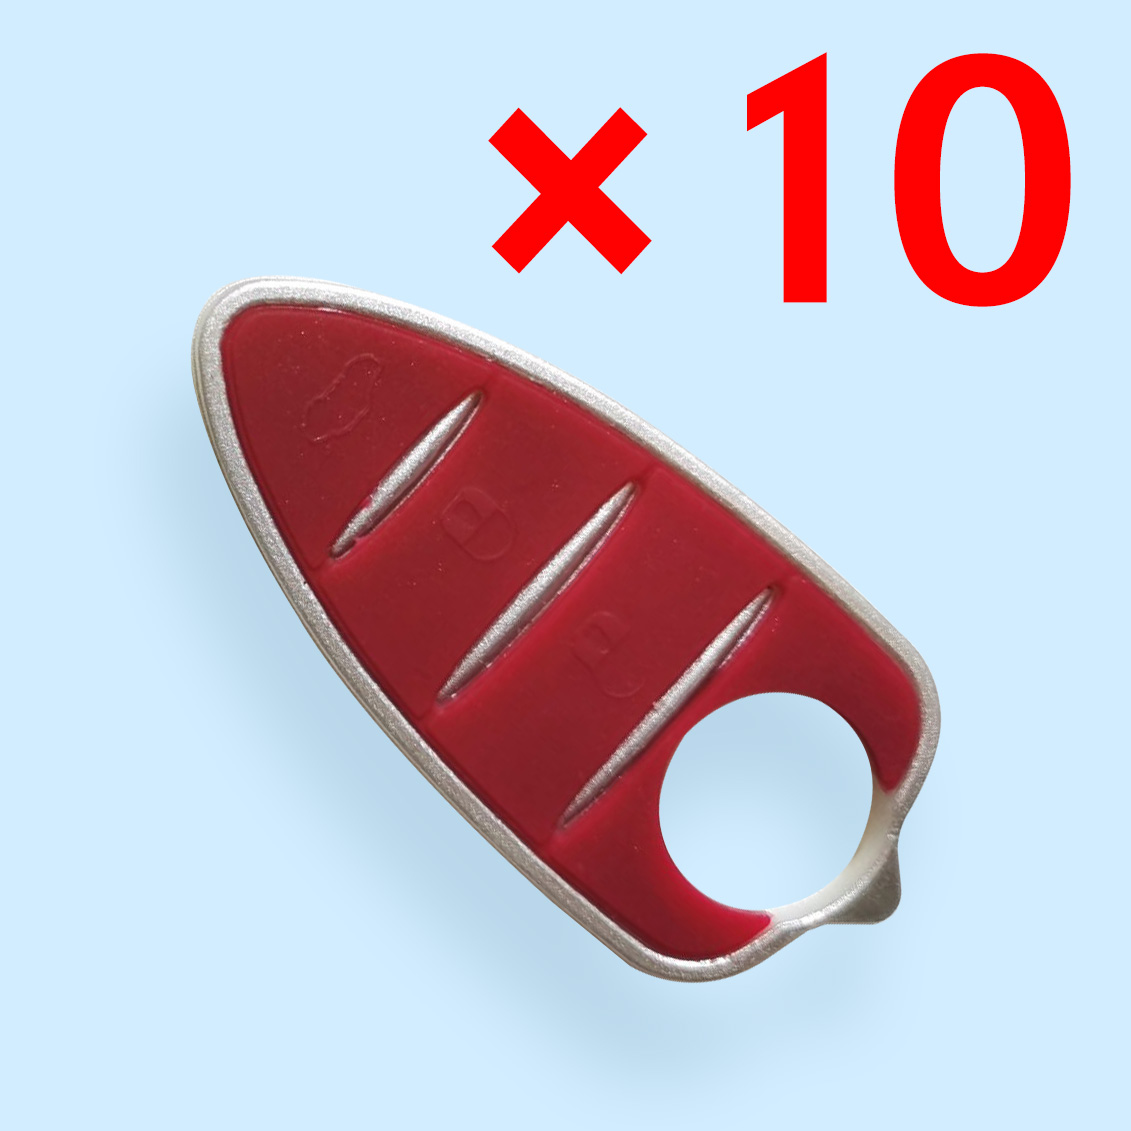 3 Buttons Rubber Pad for Alfa Remeo - 10 pcs